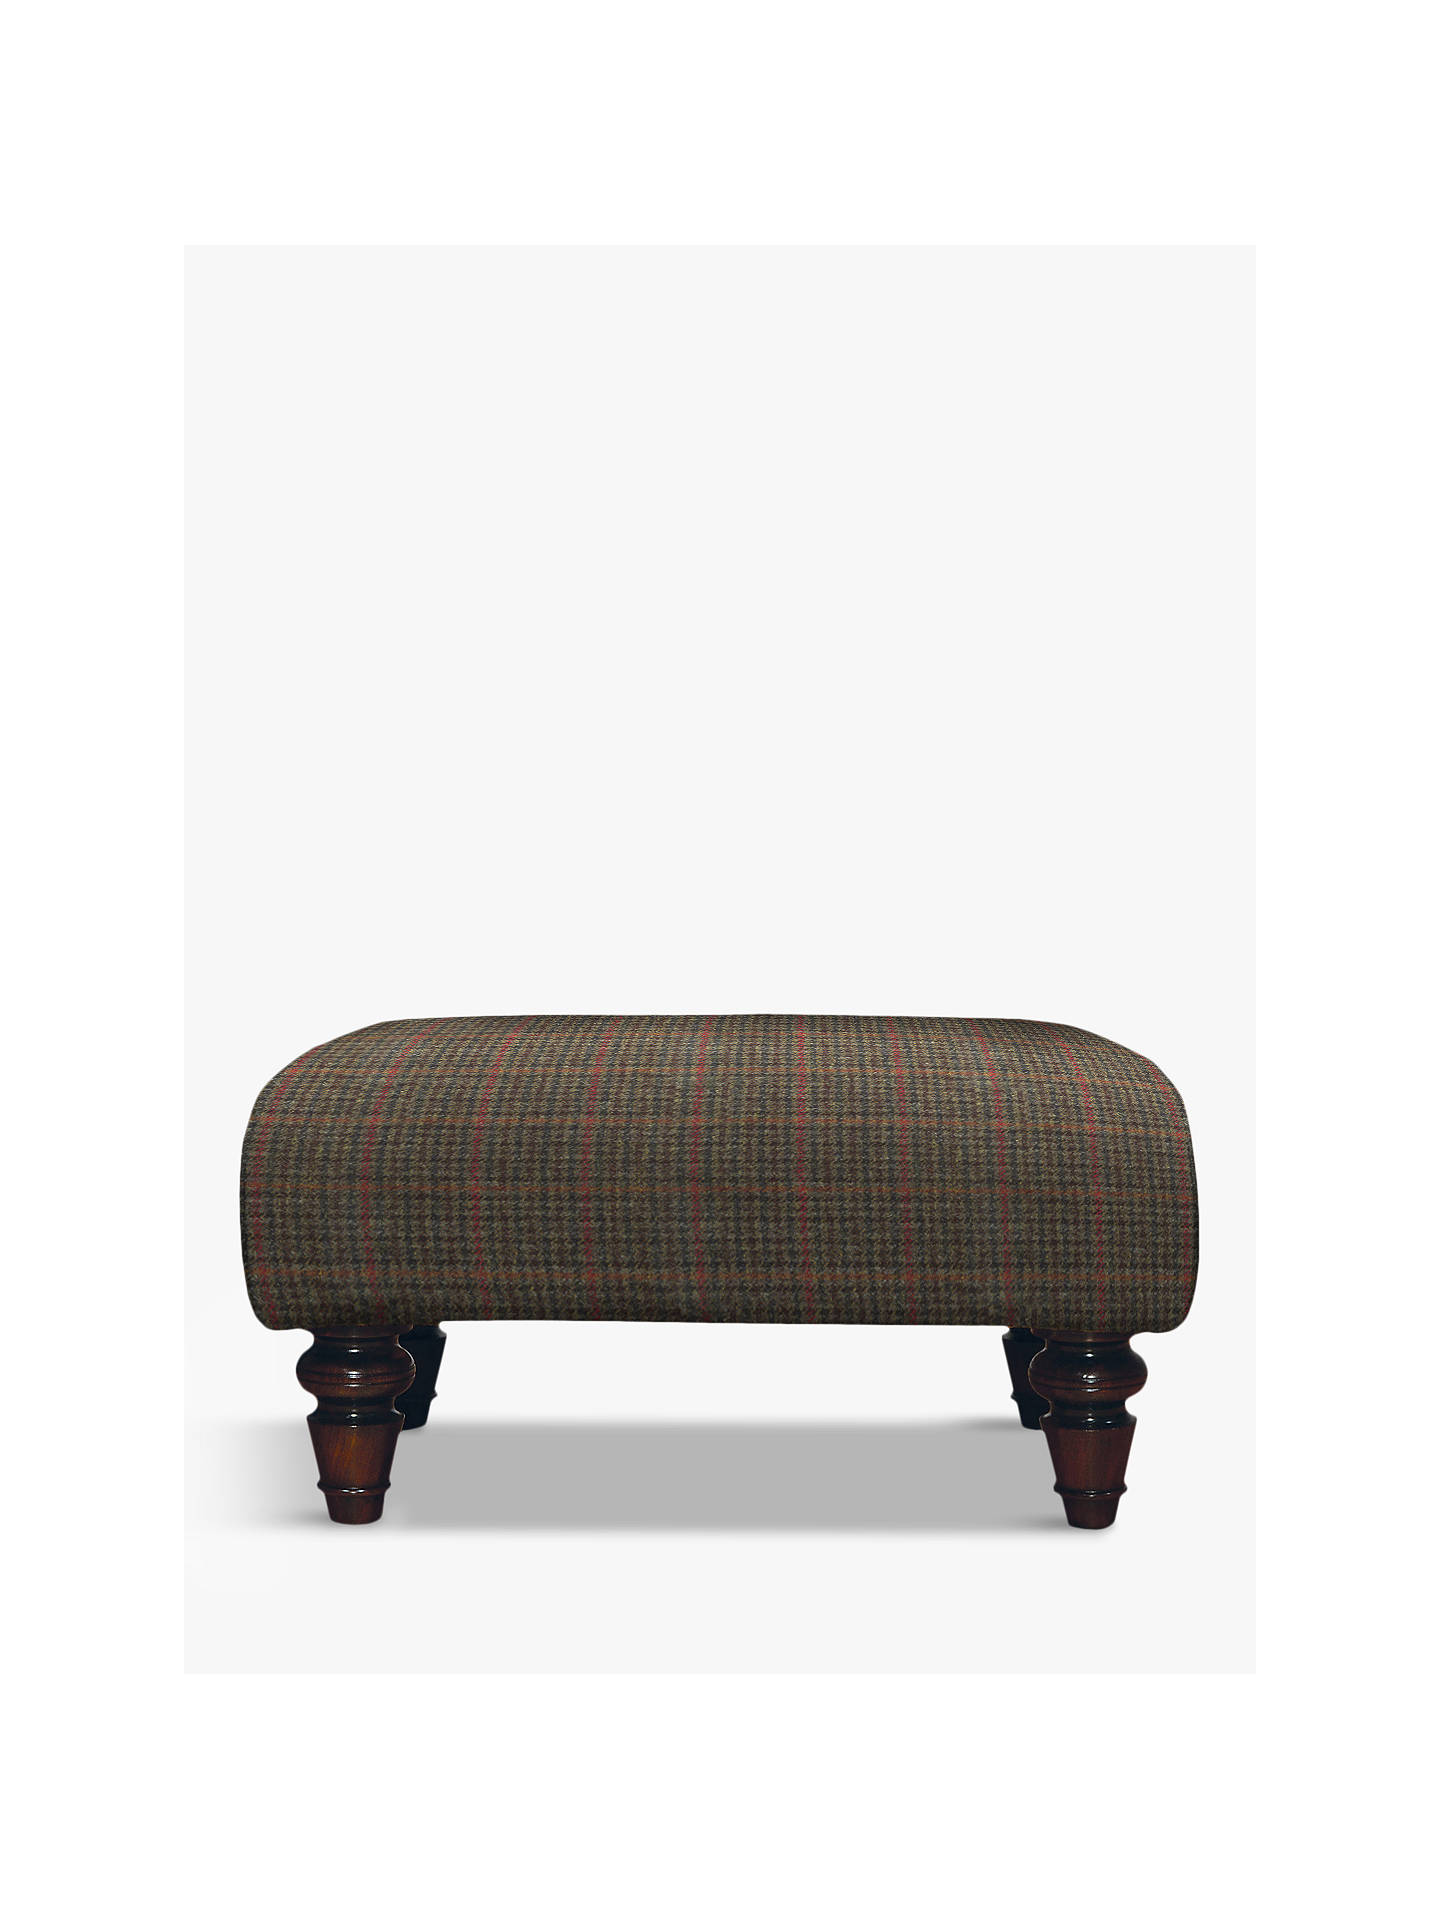 BuyTetrad Lewis Footstool, Mahogany Leg, Harris Tweed Dogtooth Check Online at johnlewis.com